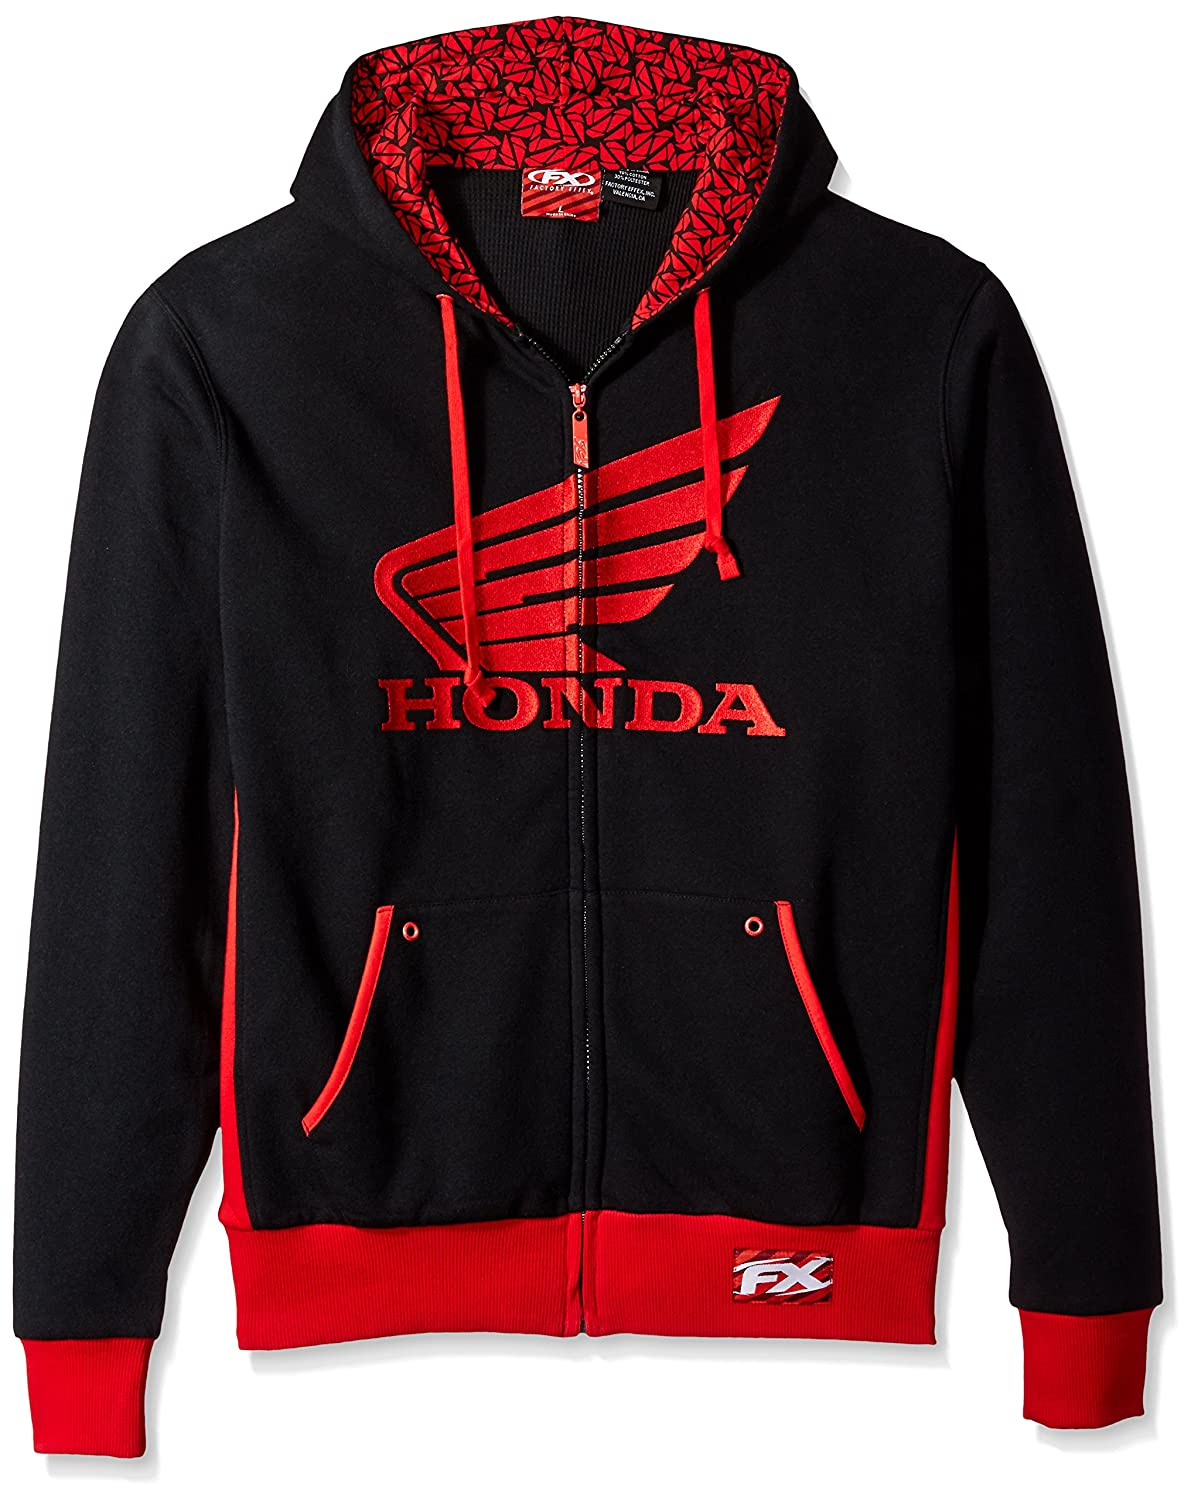 Black//Red, X-Large Factory Effex 15-88354 Honda Limit Hooded Lined Zip-up Sweatshirt